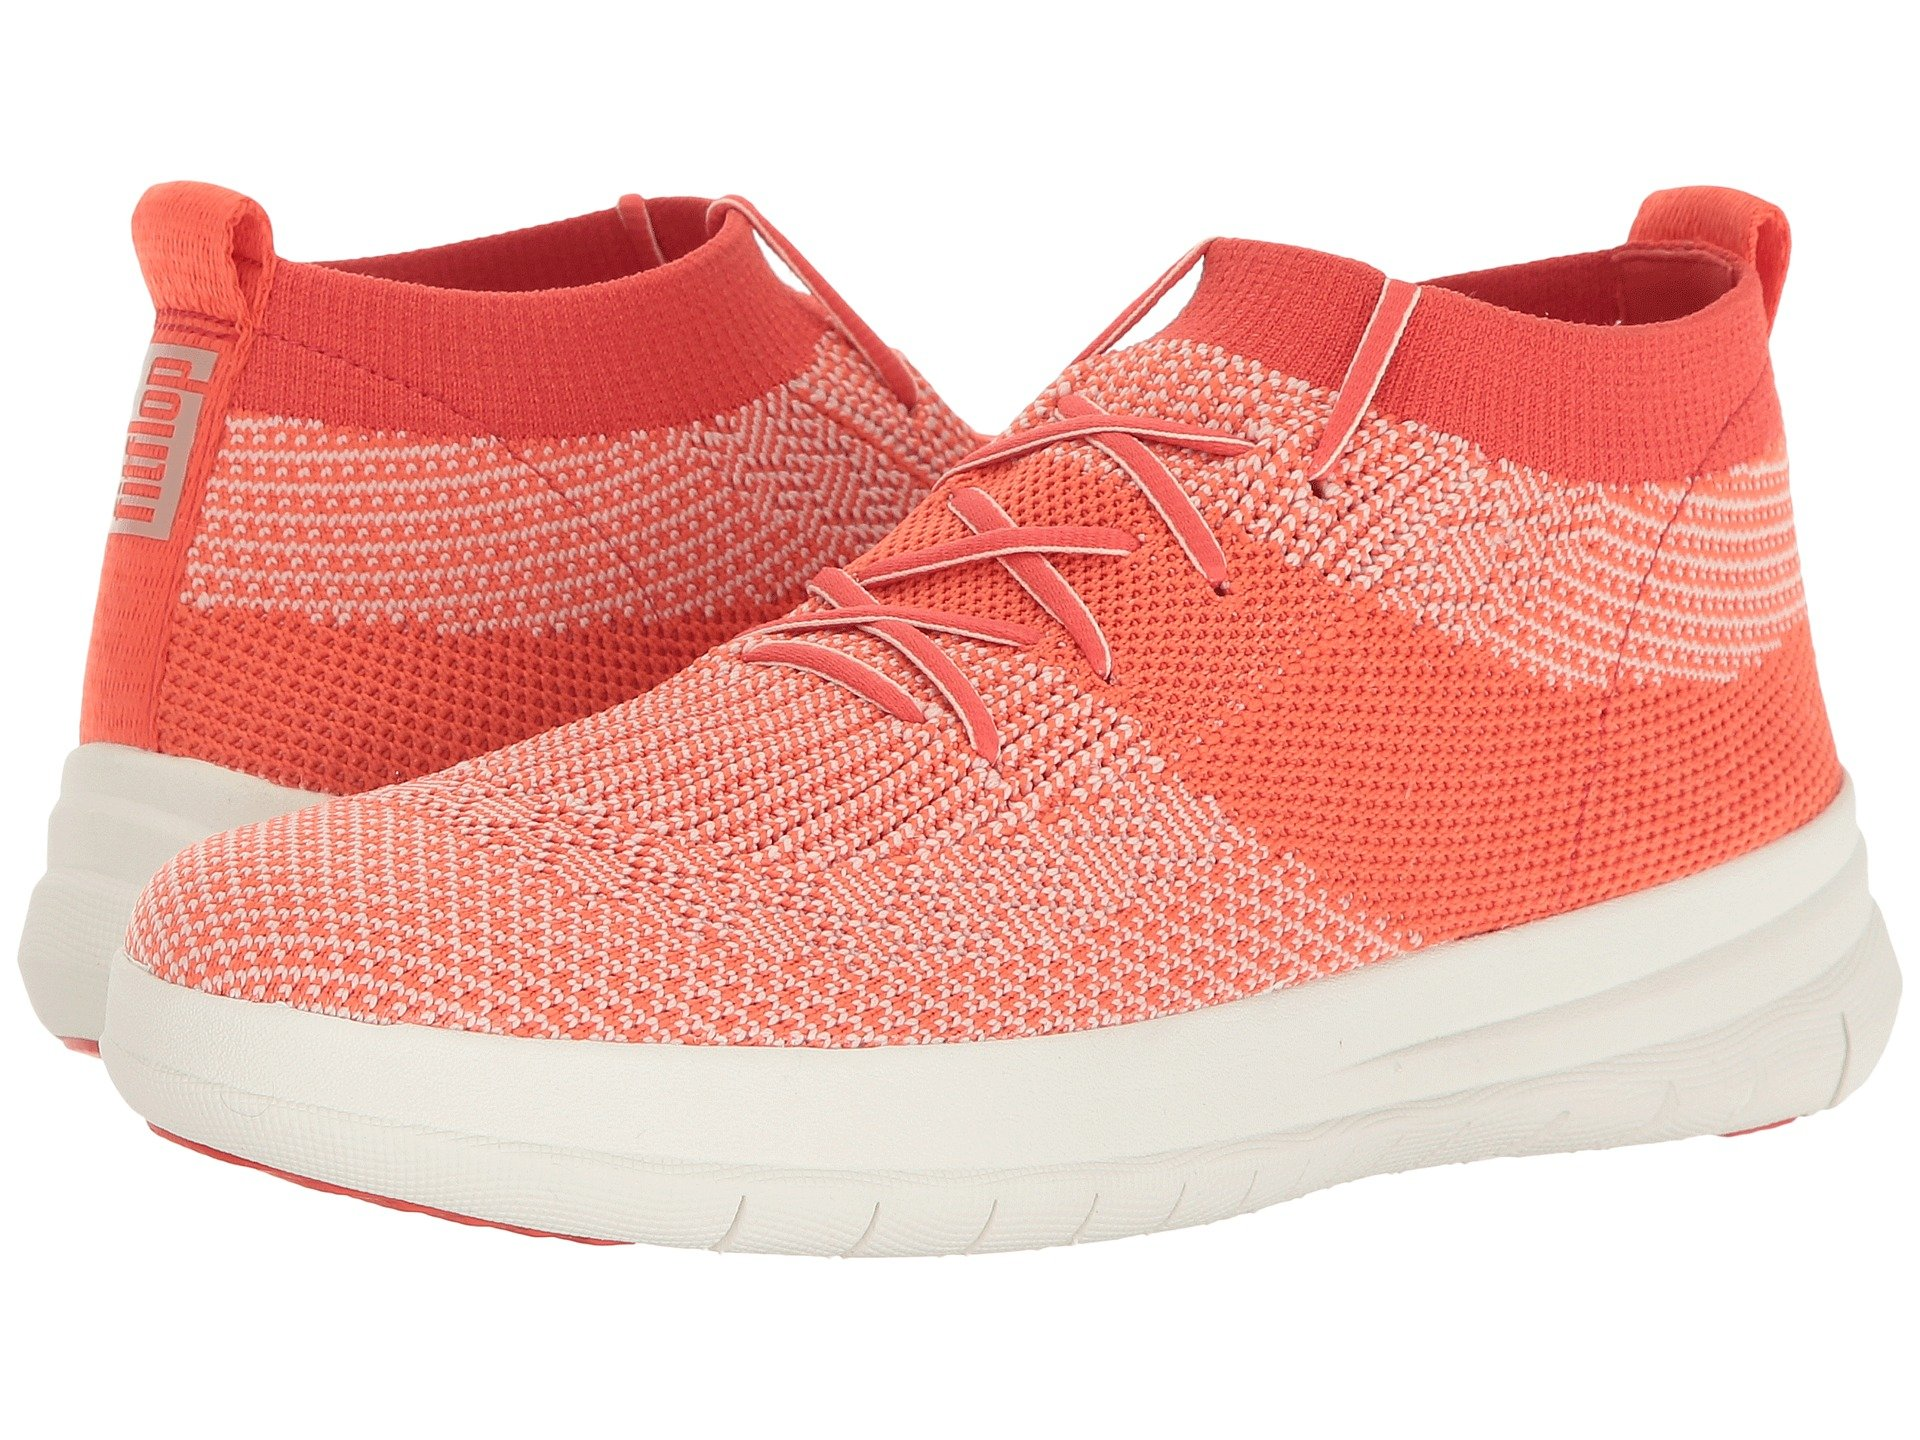 19cc488d3196 Fitflop Uberknit Slip-On High-Top Sneaker In Hot Coral Neon Blush ...